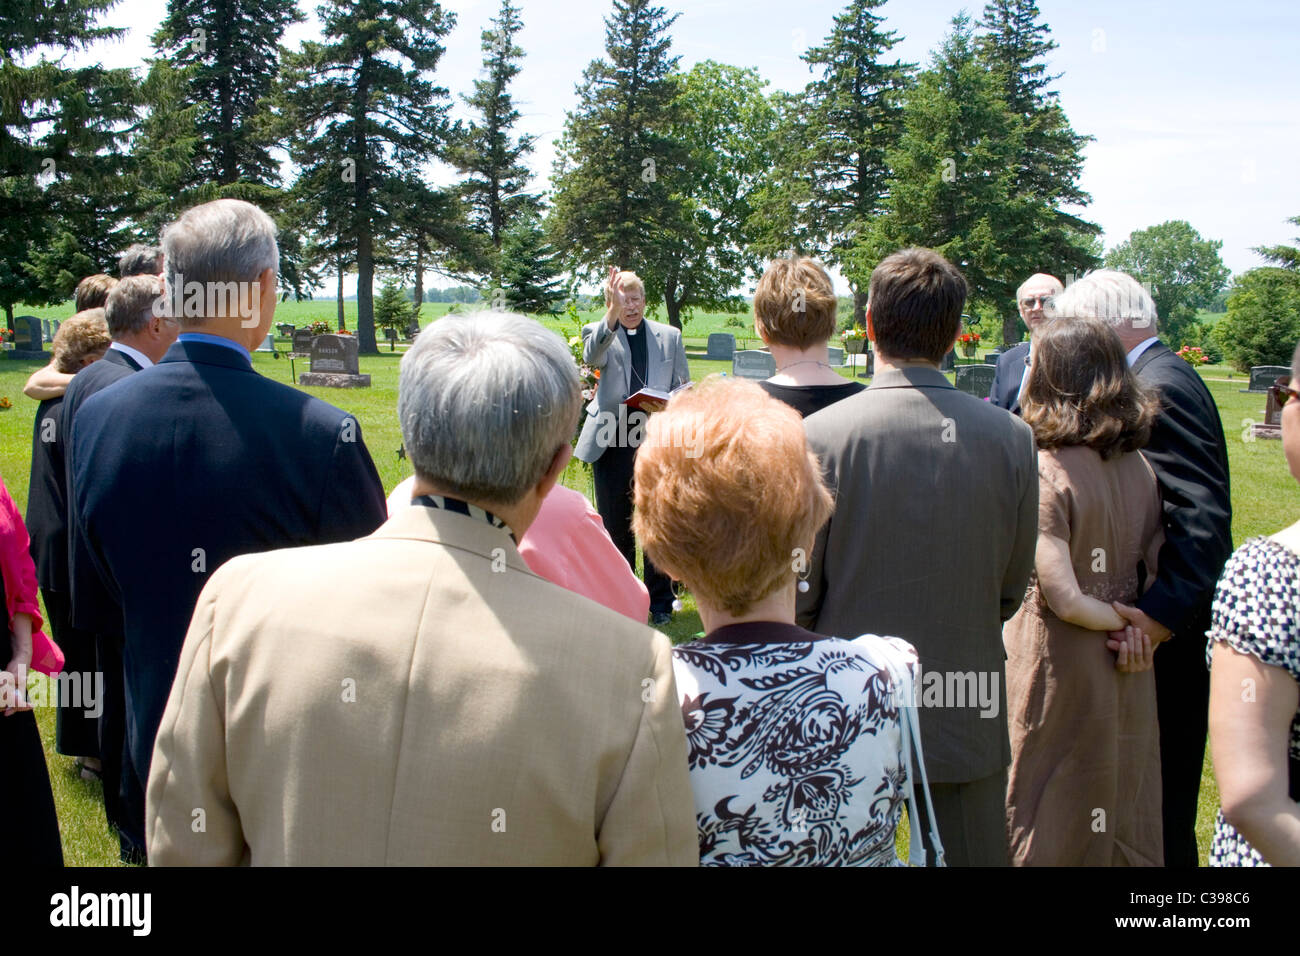 Minister performing graveside committal at a funeral before friends and family at the cemetery. St James Minnesota - Stock Image